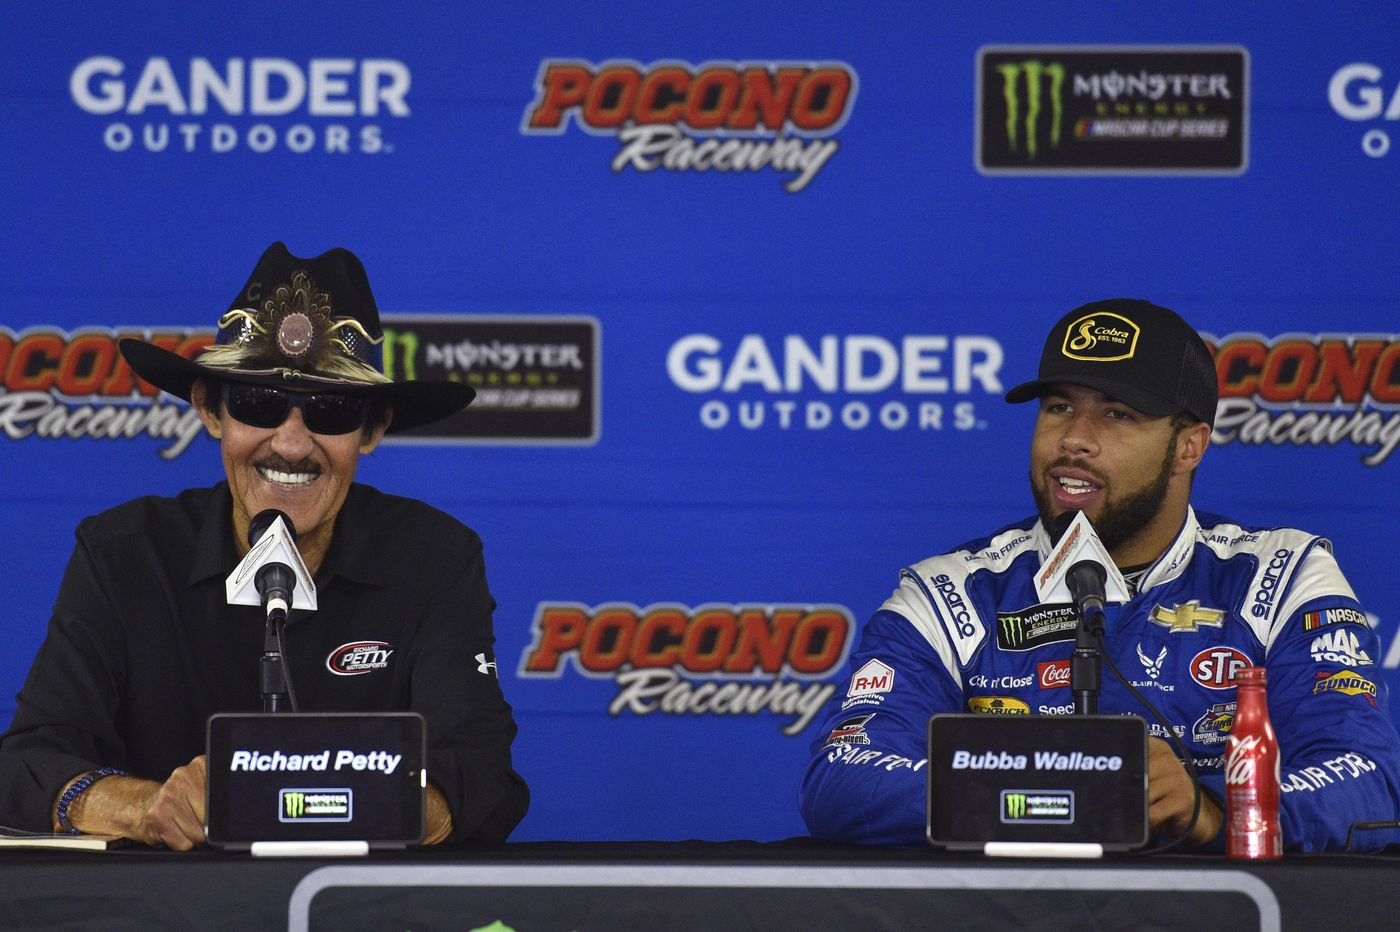 """Richard Petty believes keeping rookie Darrell """"Bubba"""" Wallace will pay off in the future"""